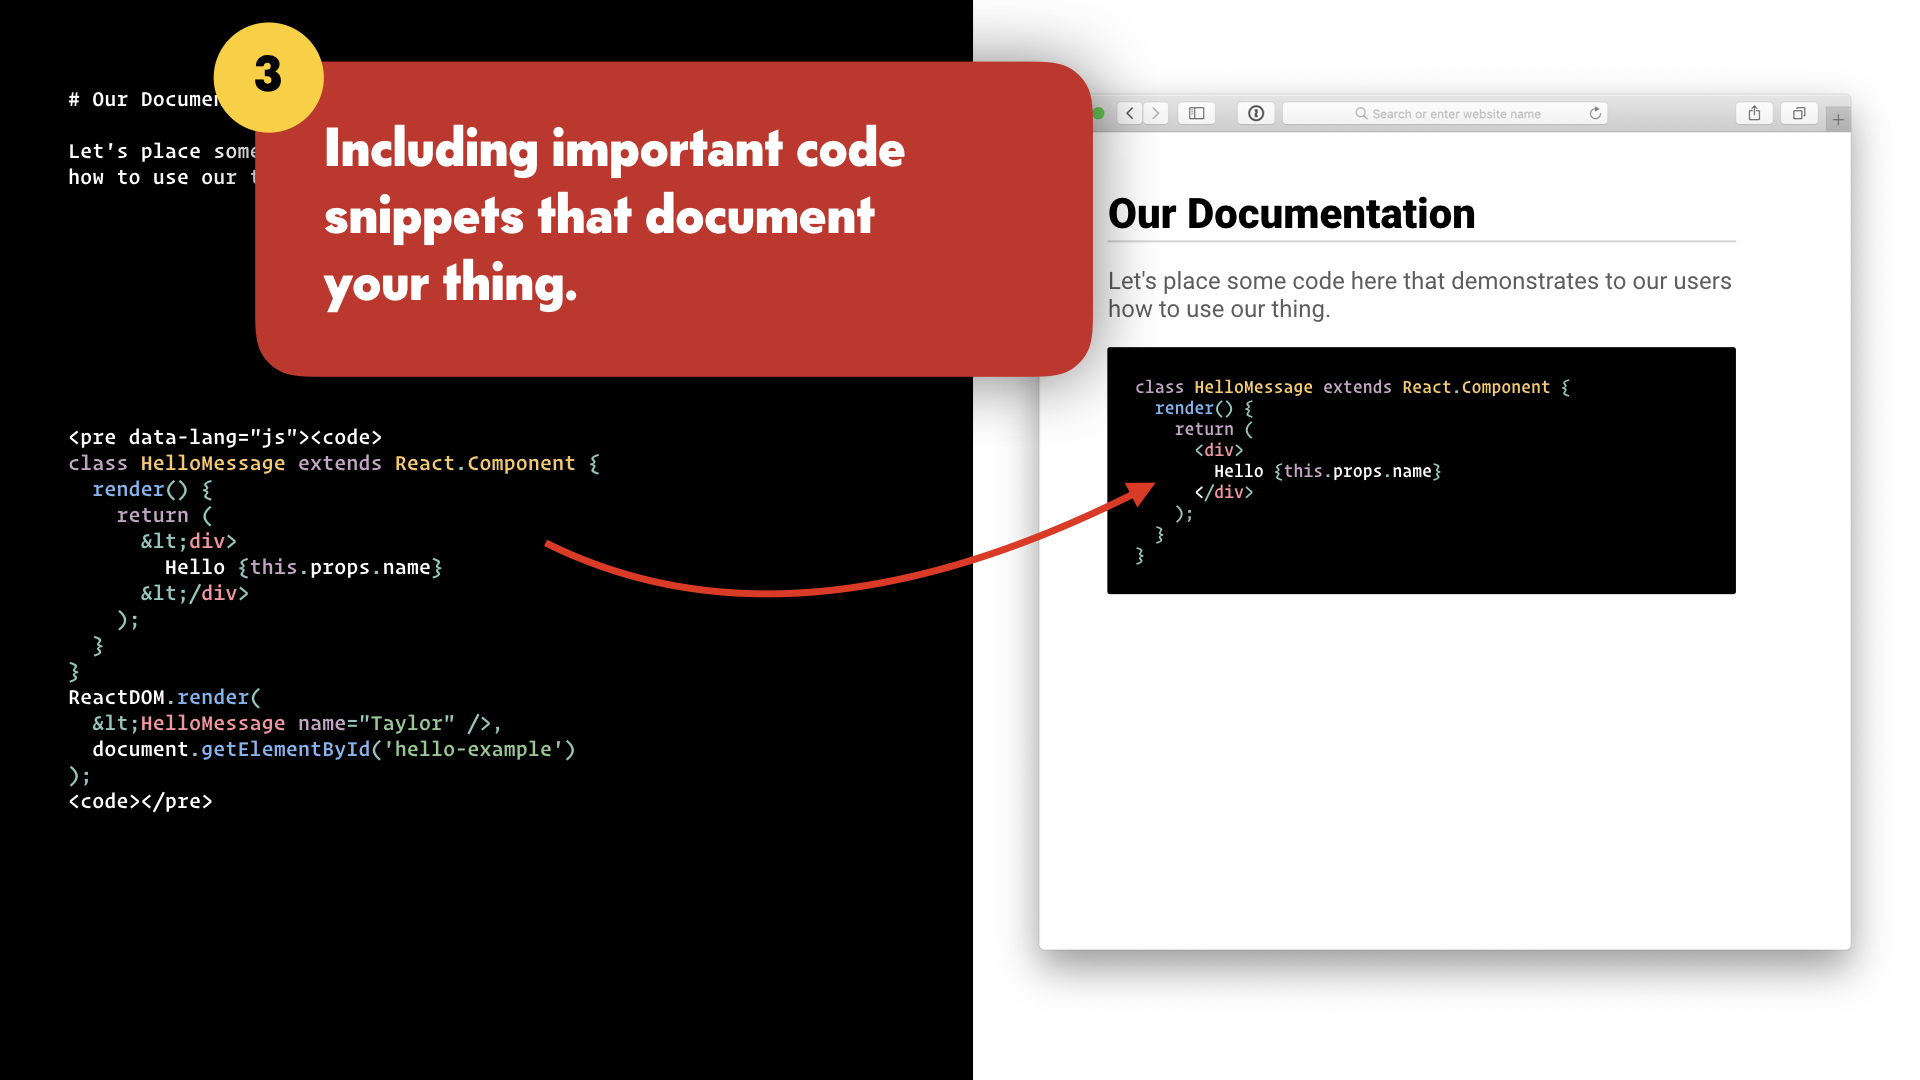 A code snippet is added to the text editor, and is shown in the browser window.